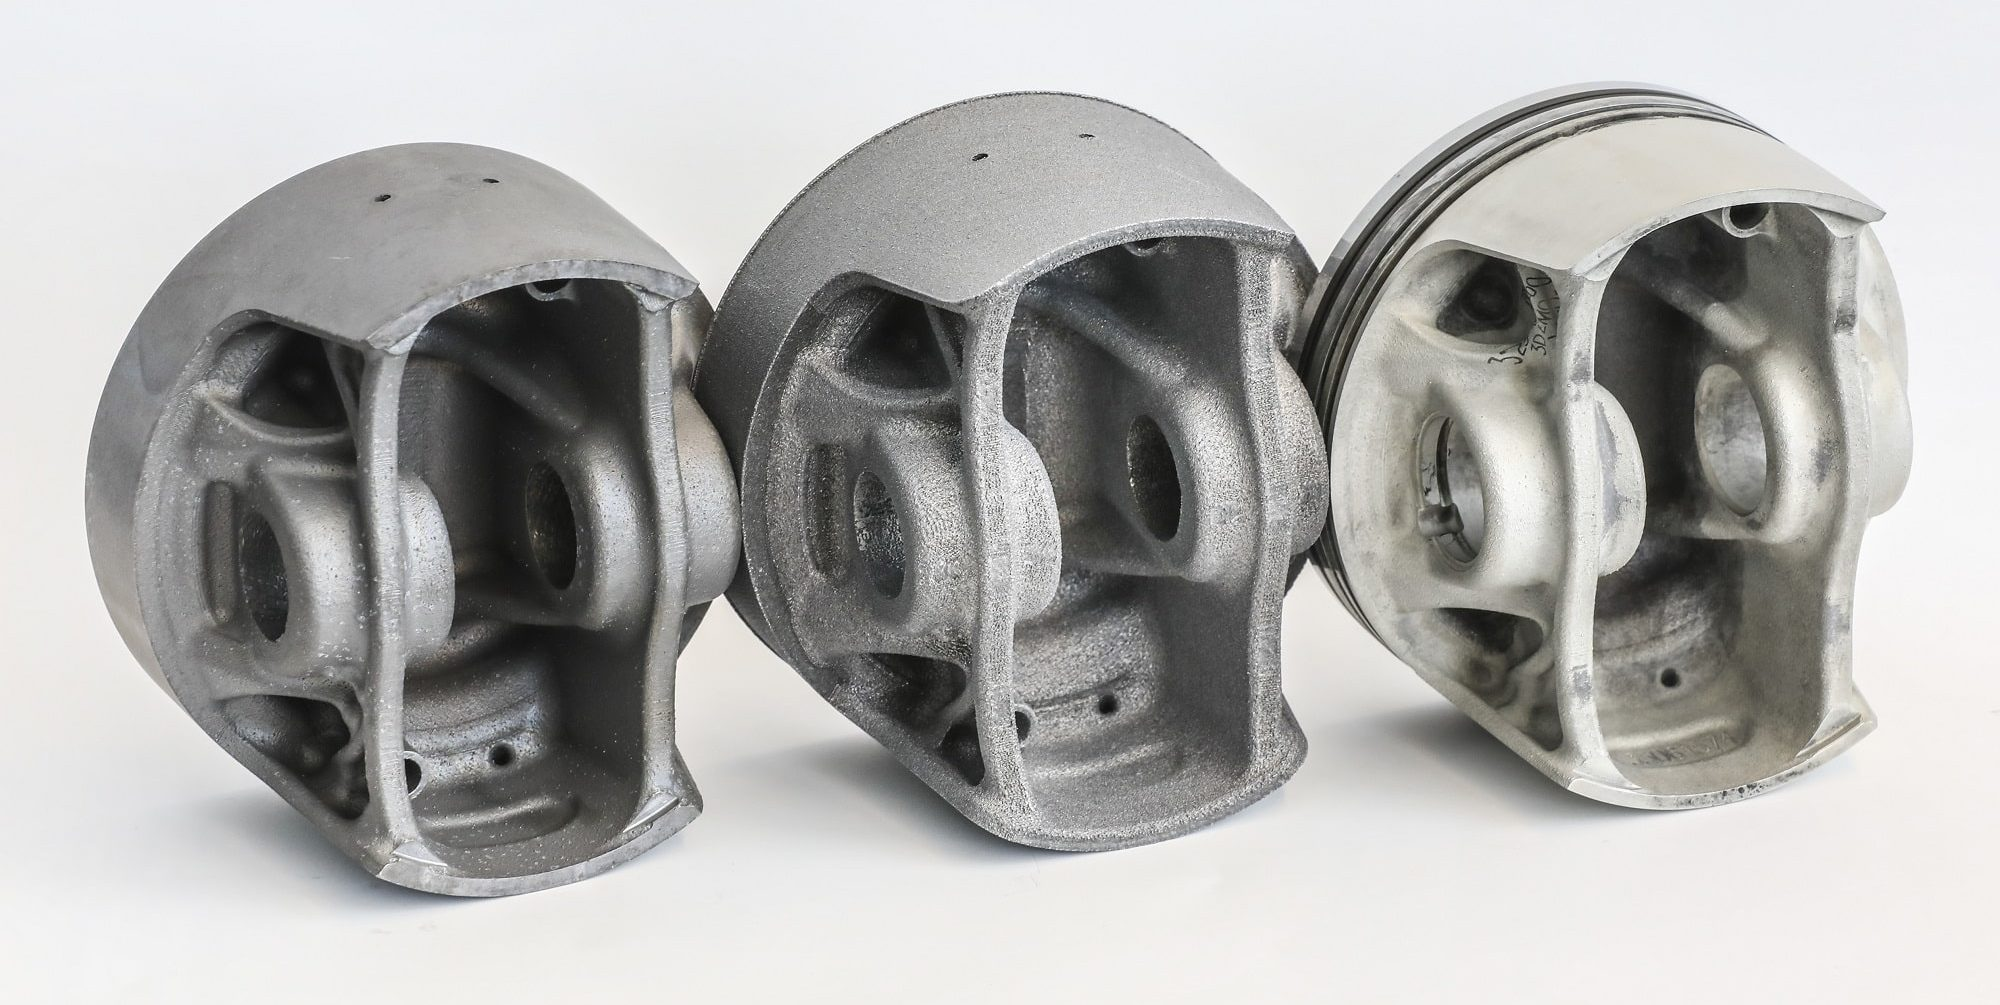 World-First 3D-Printed Pistons Developed by Porsche, Mahle and Trumpf